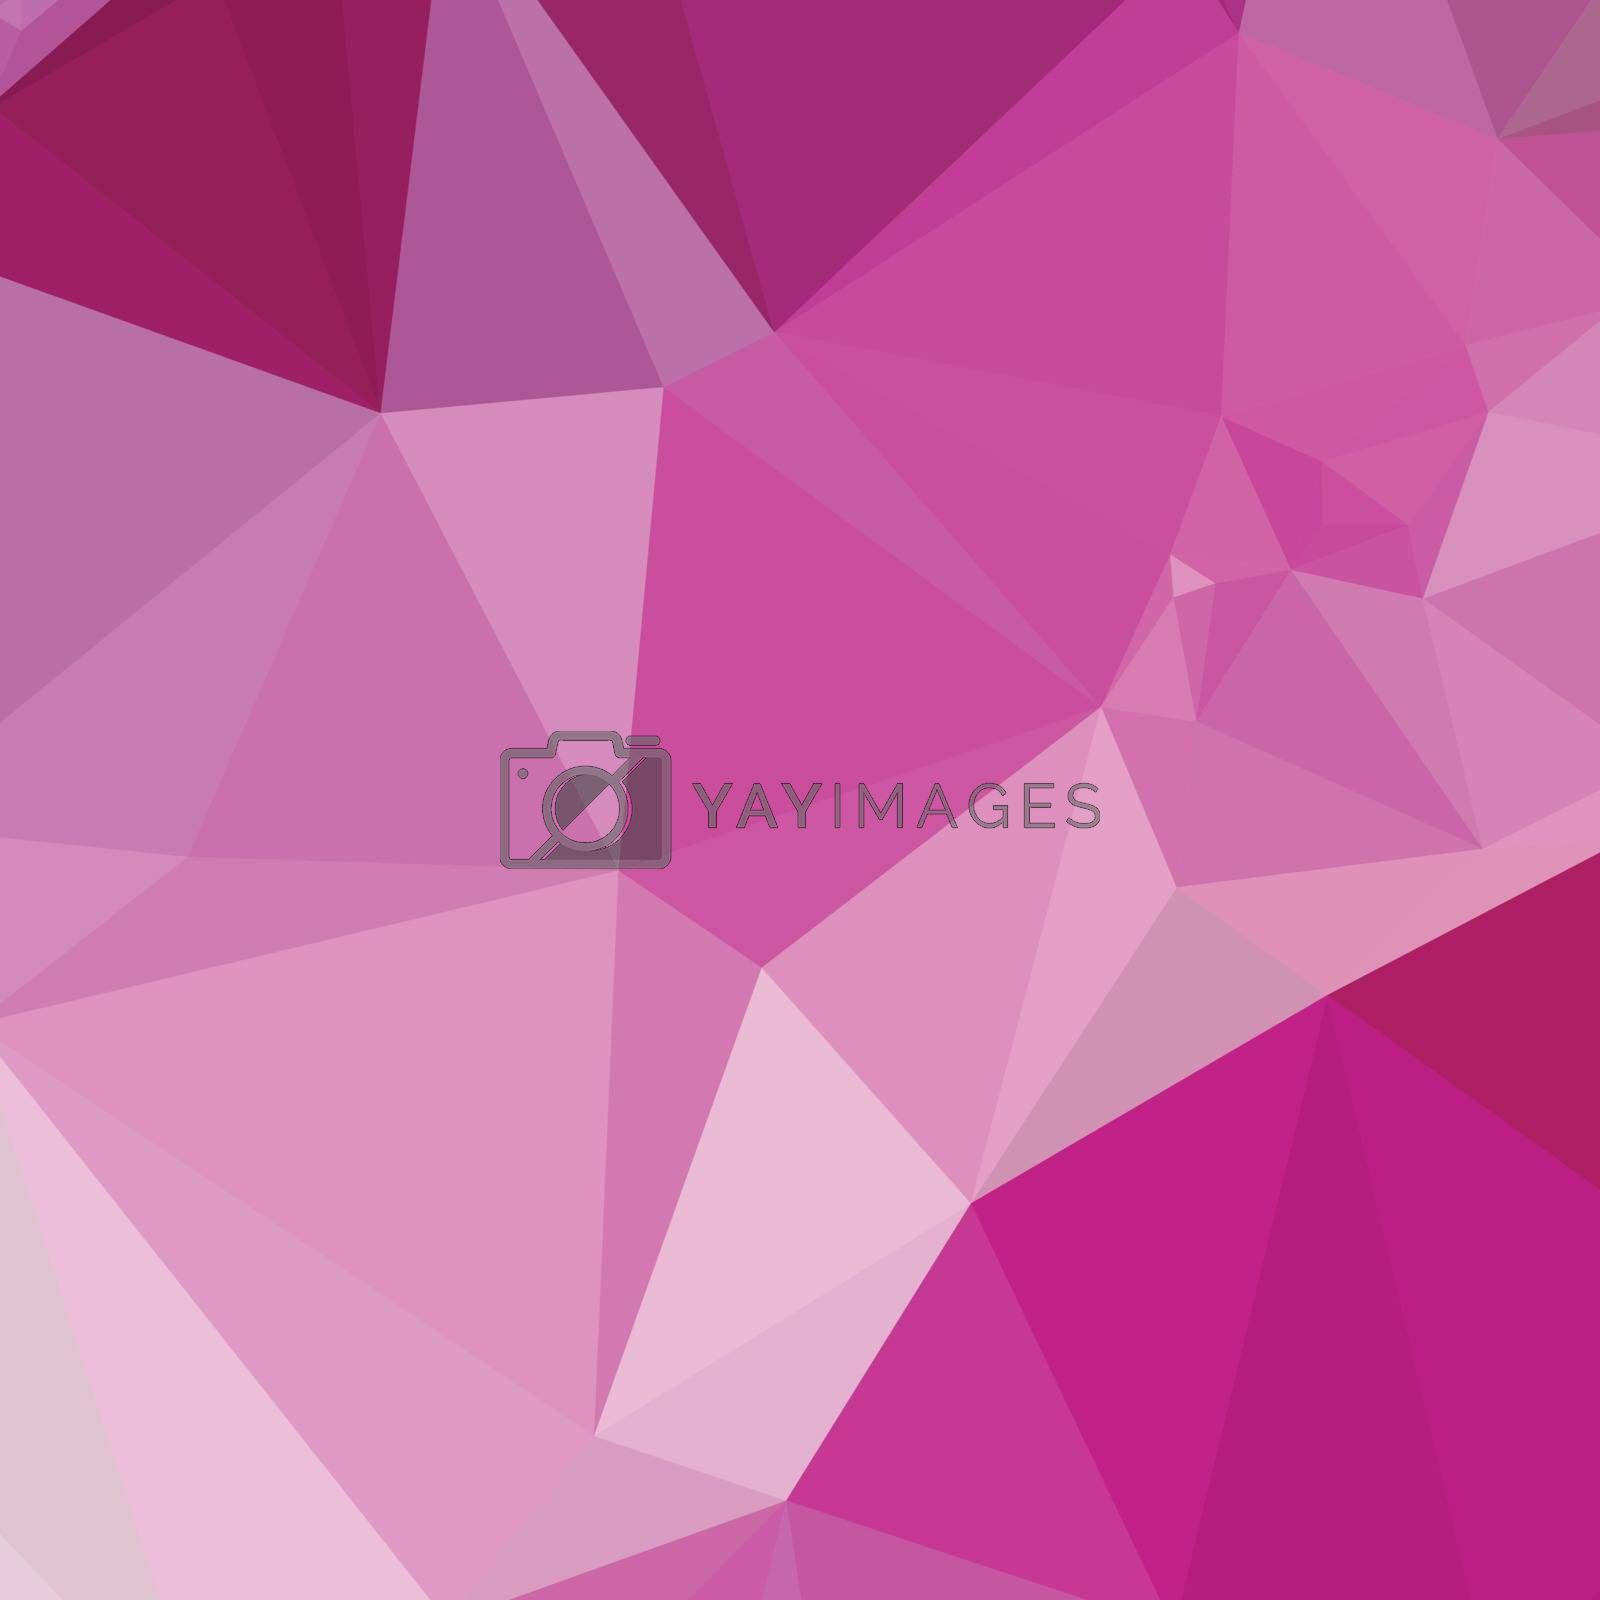 Low polygon style illustration of a fashion fucshia pink abstract geometric background.